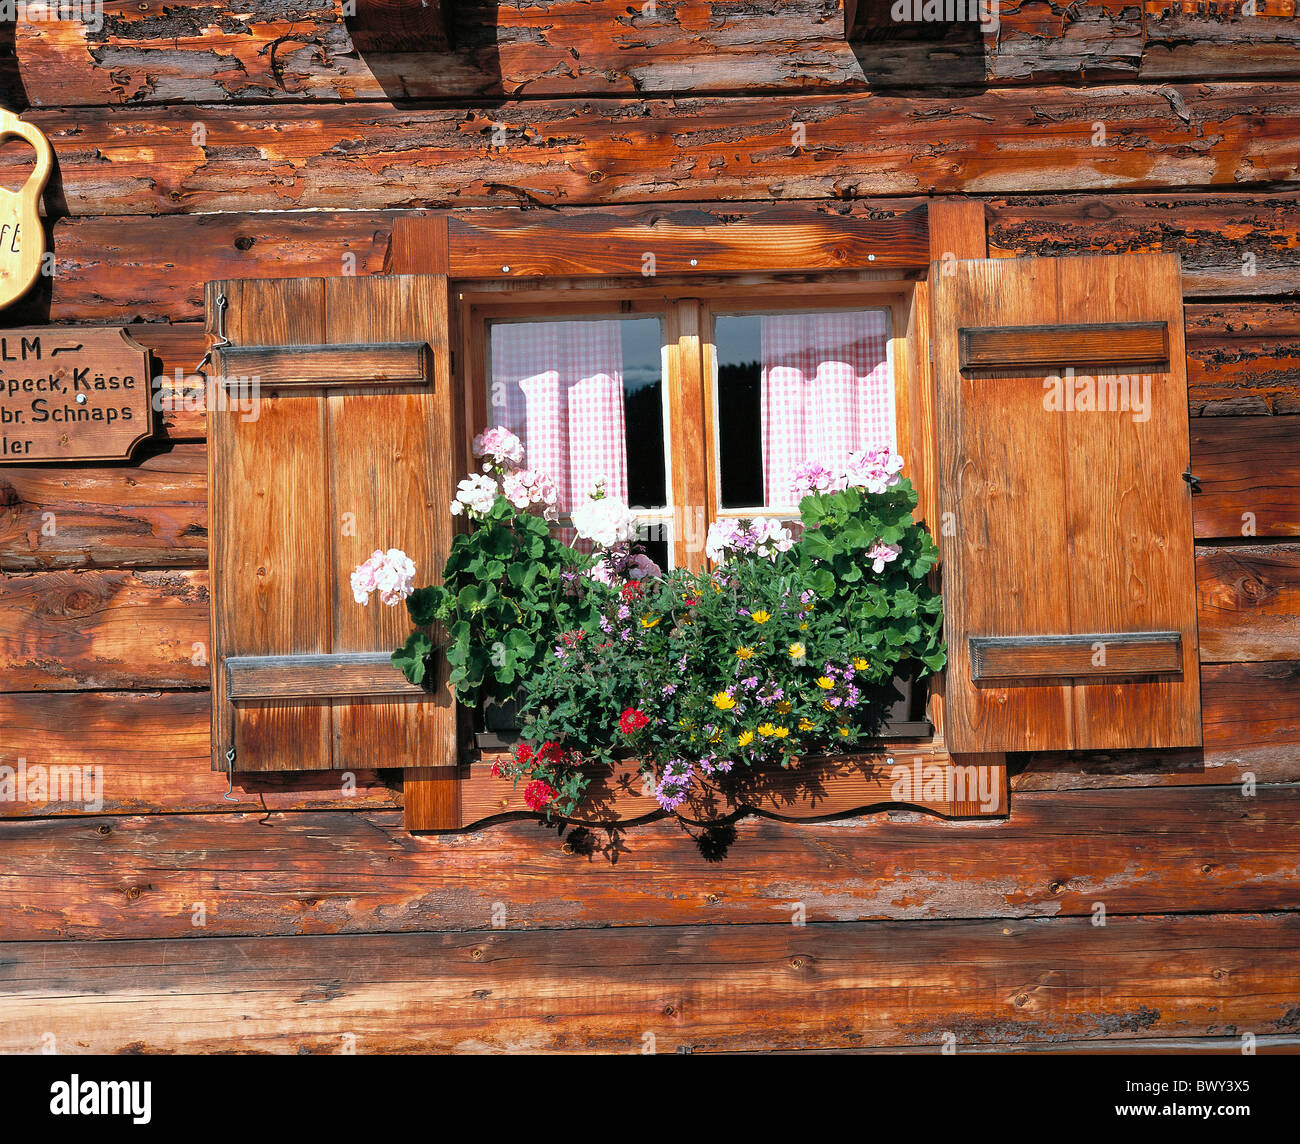 haus heimat blume fenster alph tte alp h tte holzhaus sterreich europa austria europe stockfoto. Black Bedroom Furniture Sets. Home Design Ideas